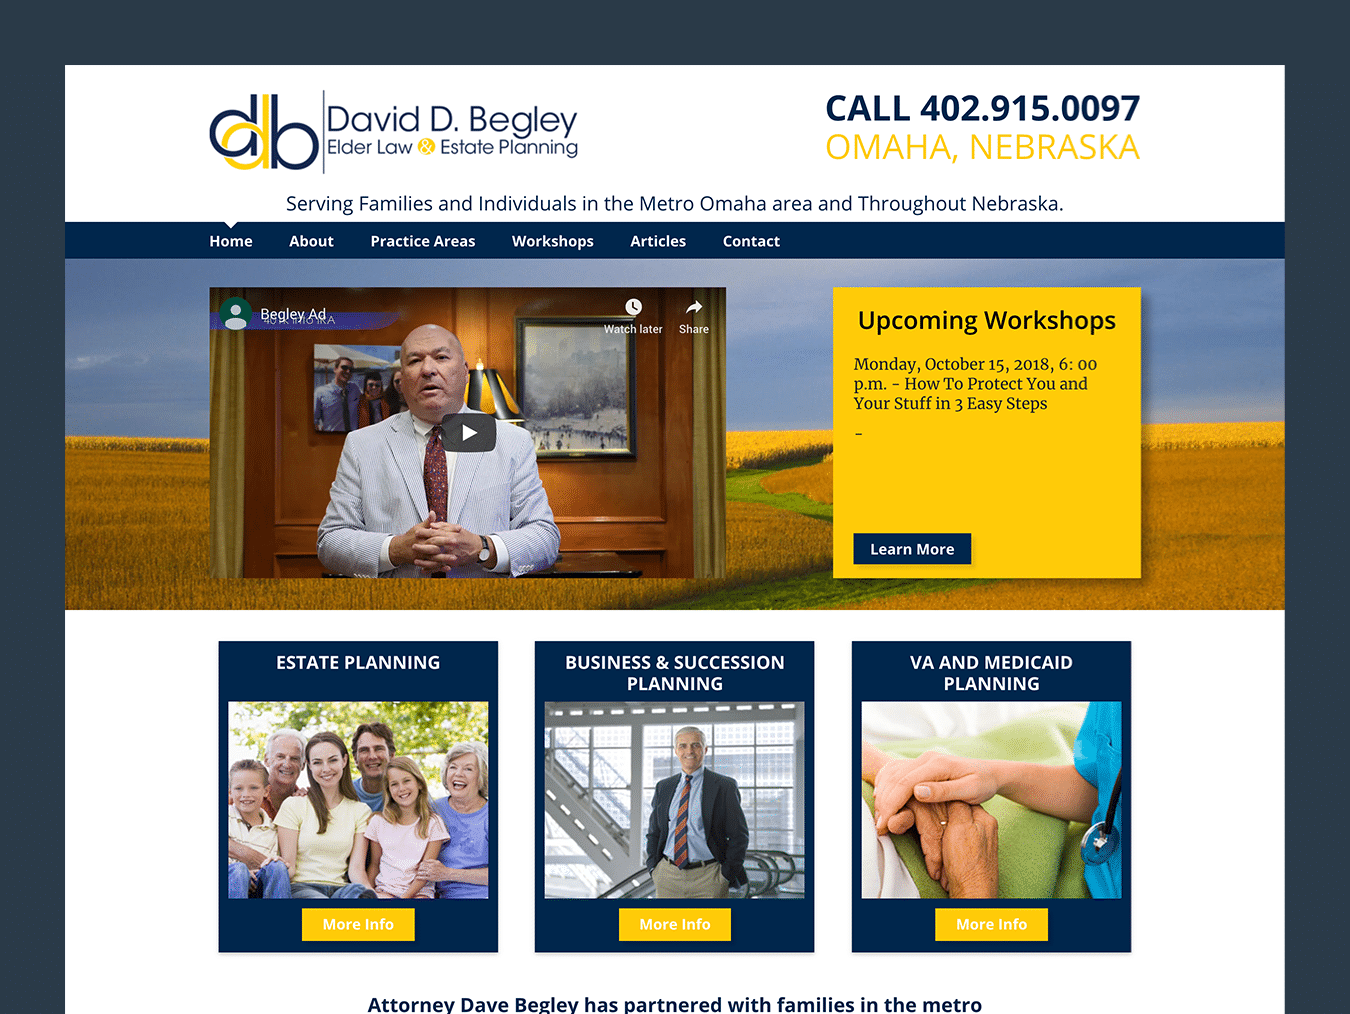 Service Company Web Design – David D. Begley (Thumbnail Design)